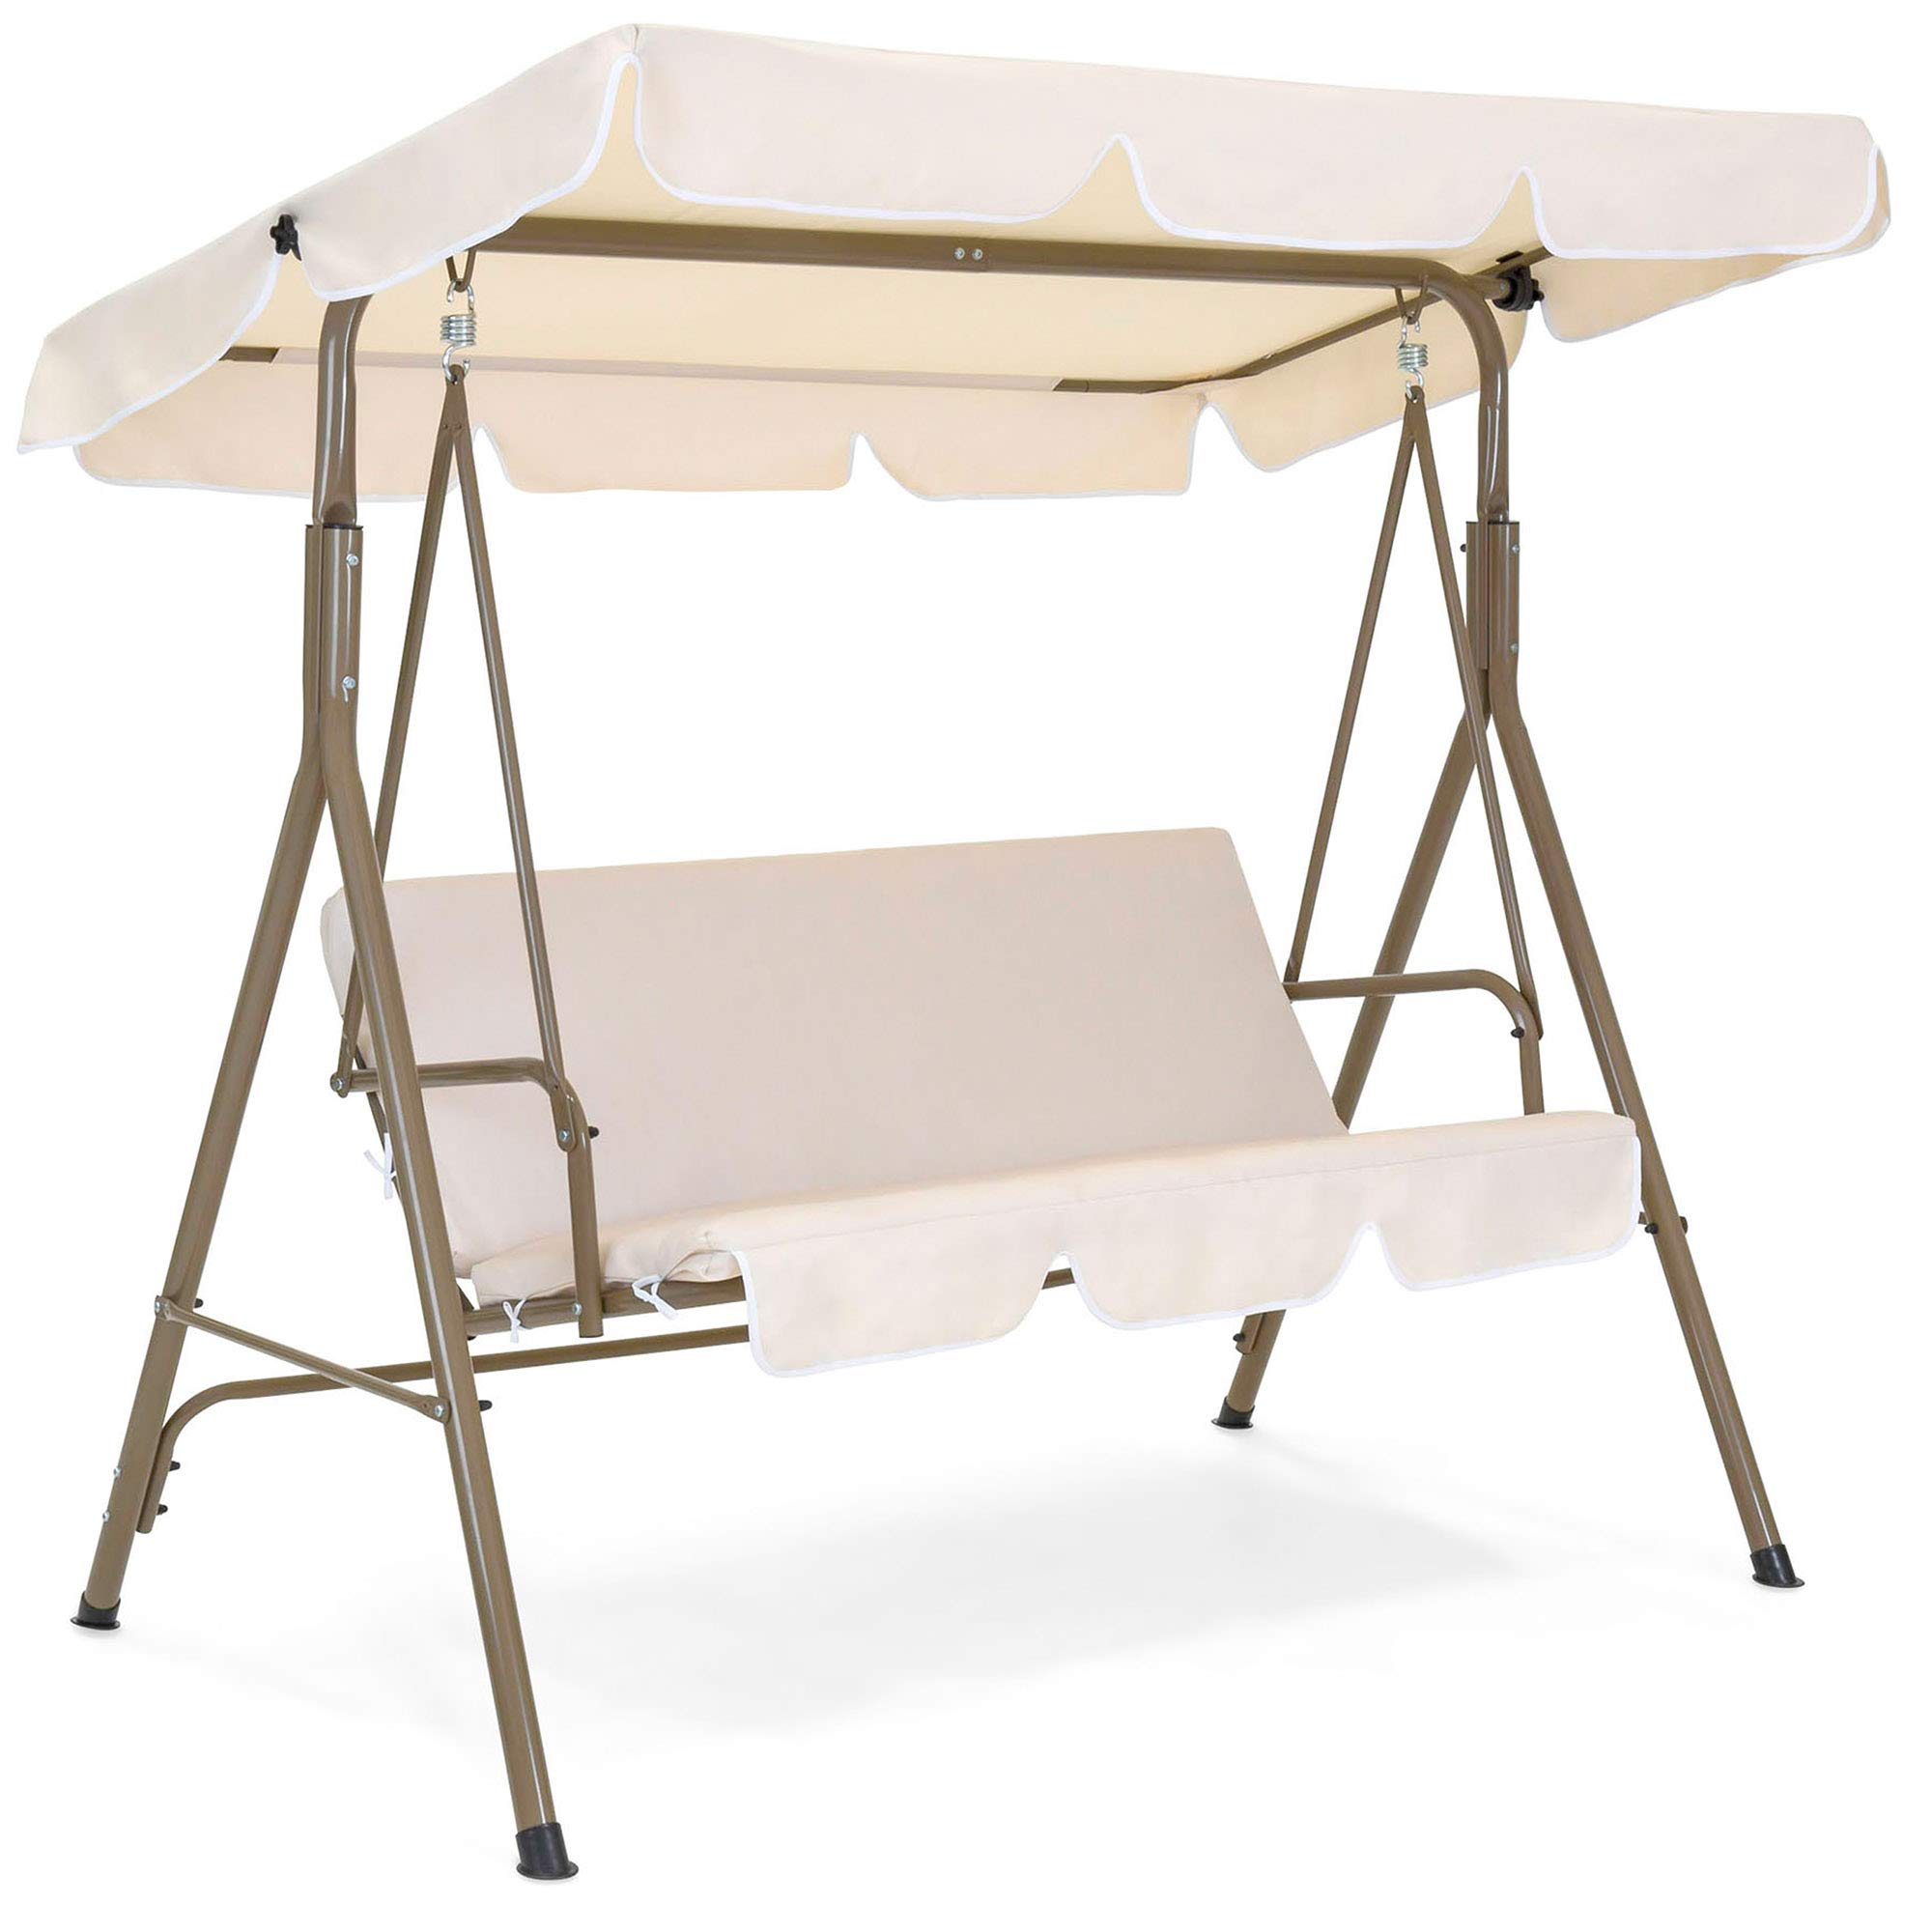 Best Choice Products 2-Person Outdoor Large Convertible Canopy Swing Glider Lounge Chair w/ Removable Cushions- Beige by Best Choice Products